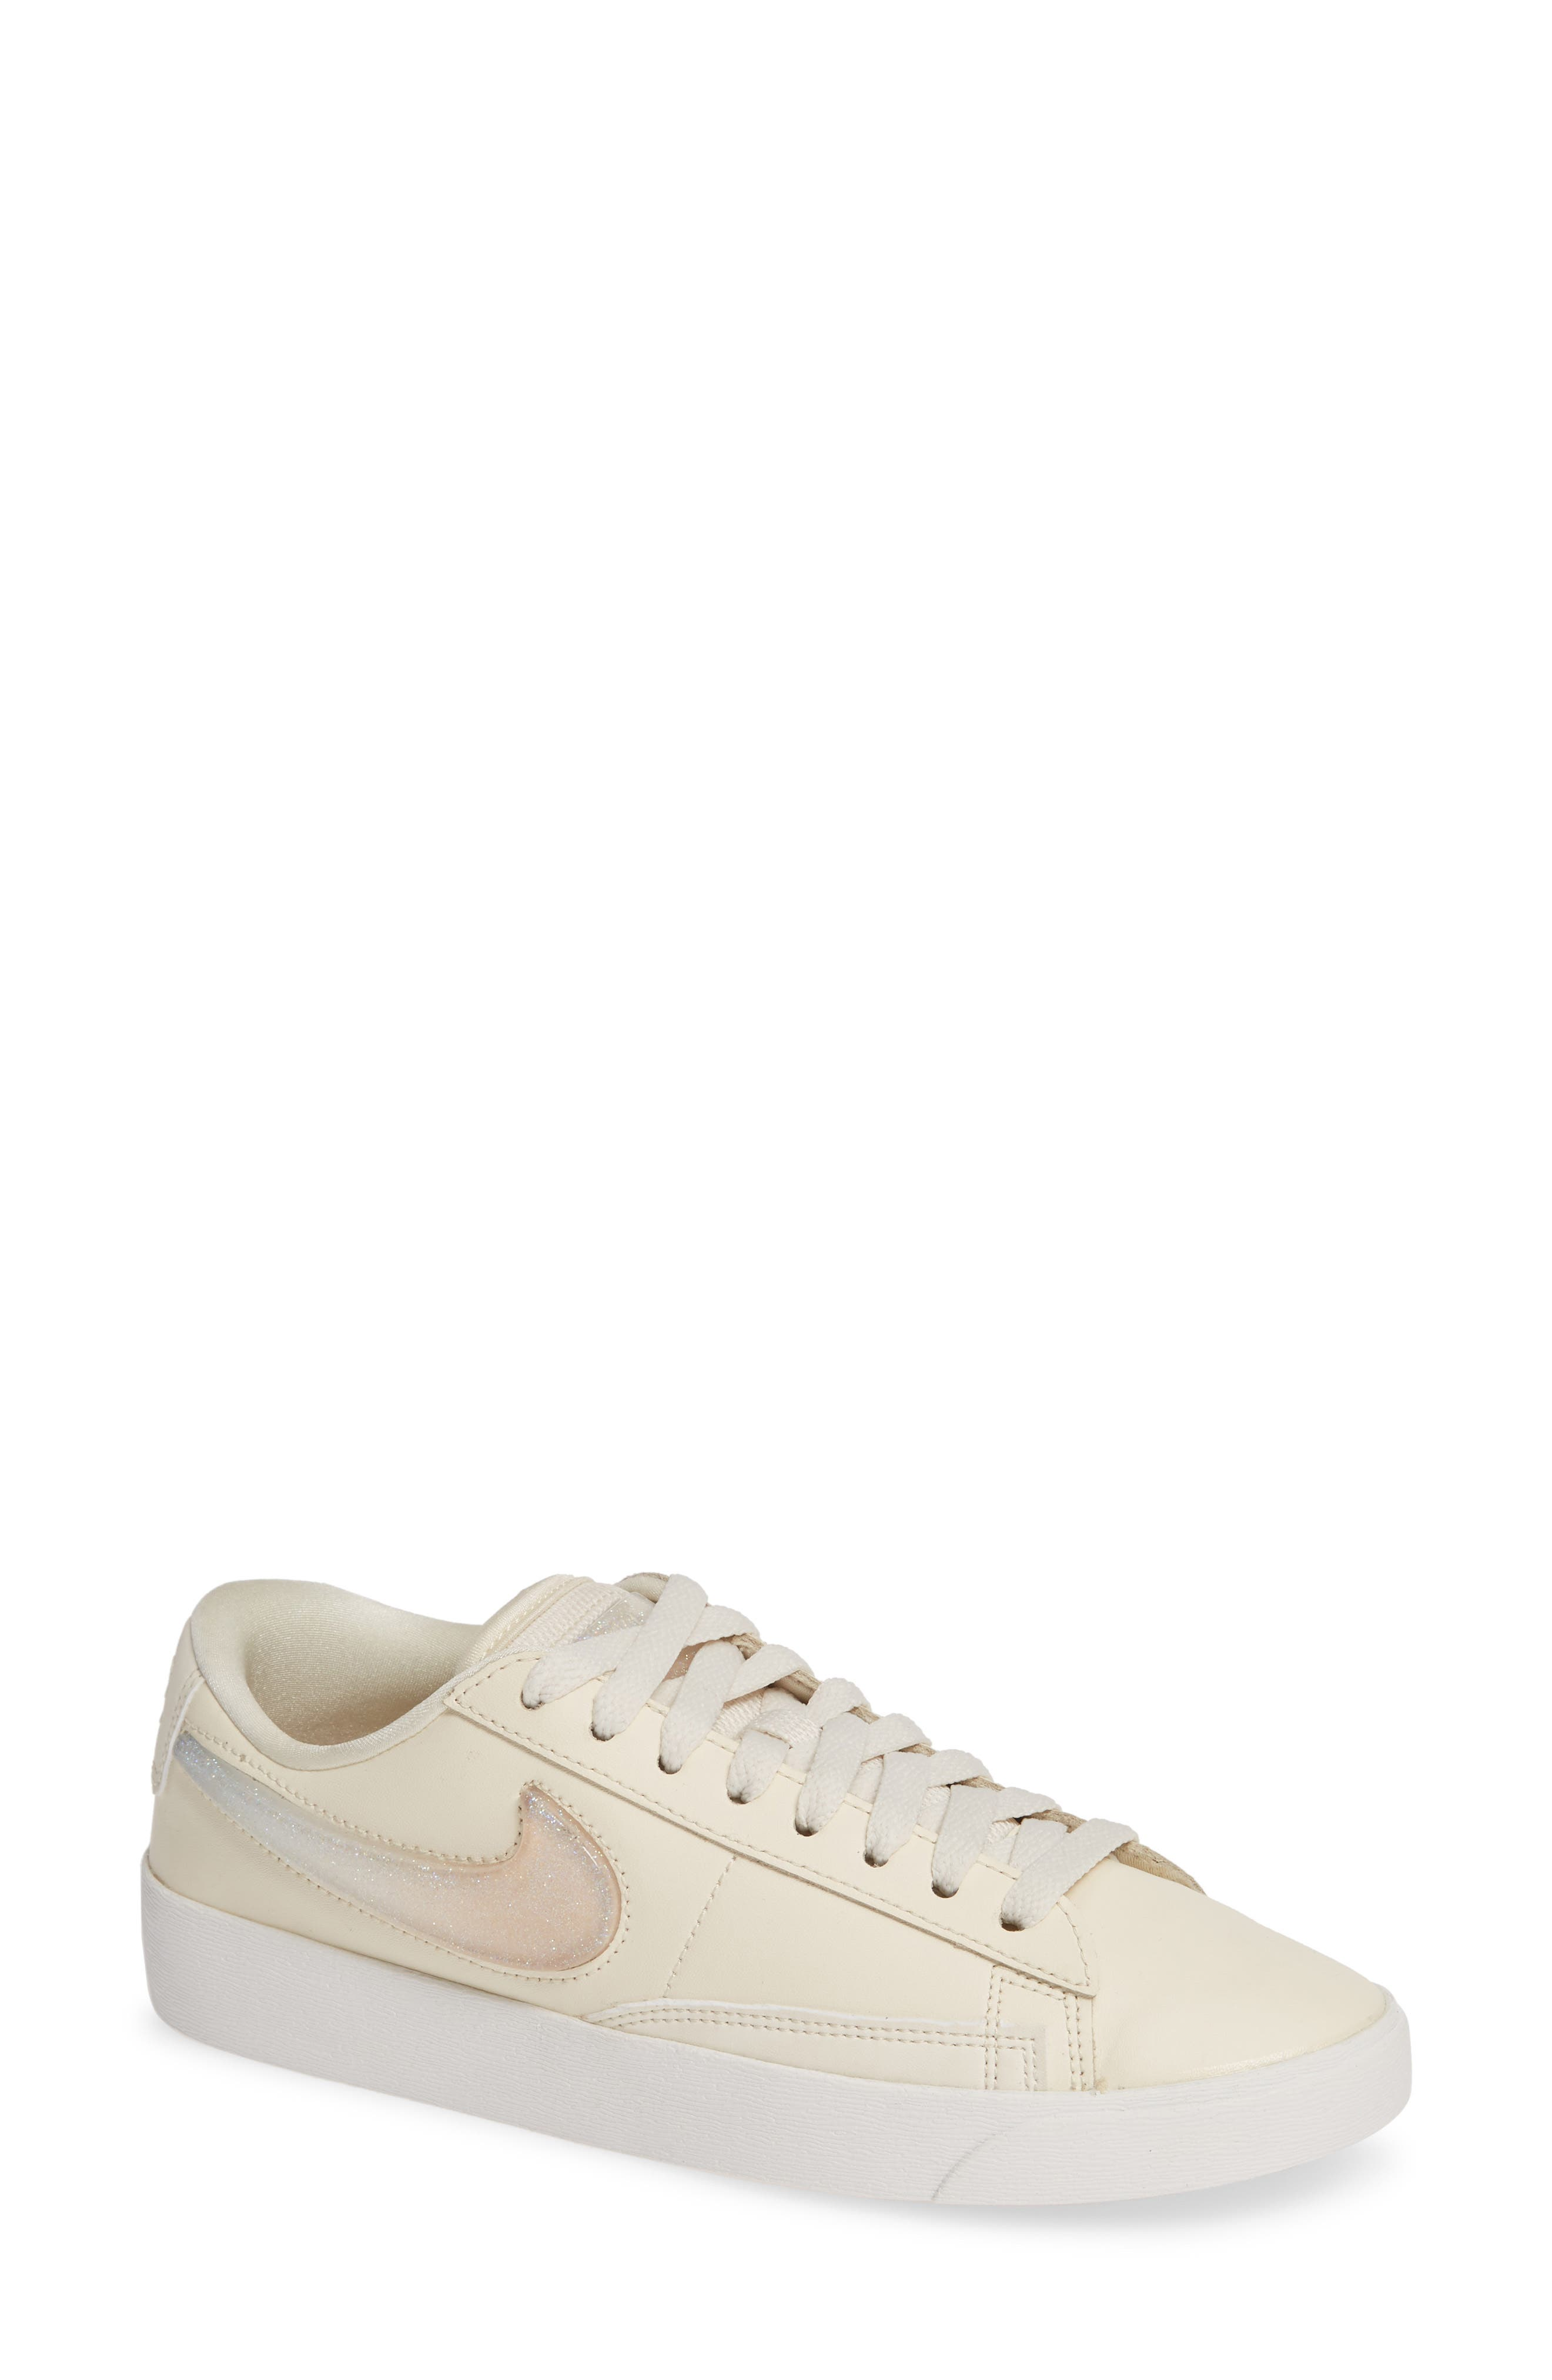 ,                             Blazer Low LX Sneaker,                             Main thumbnail 1, color,                             PALE IVORY/ GUAVA ICE/ WHITE